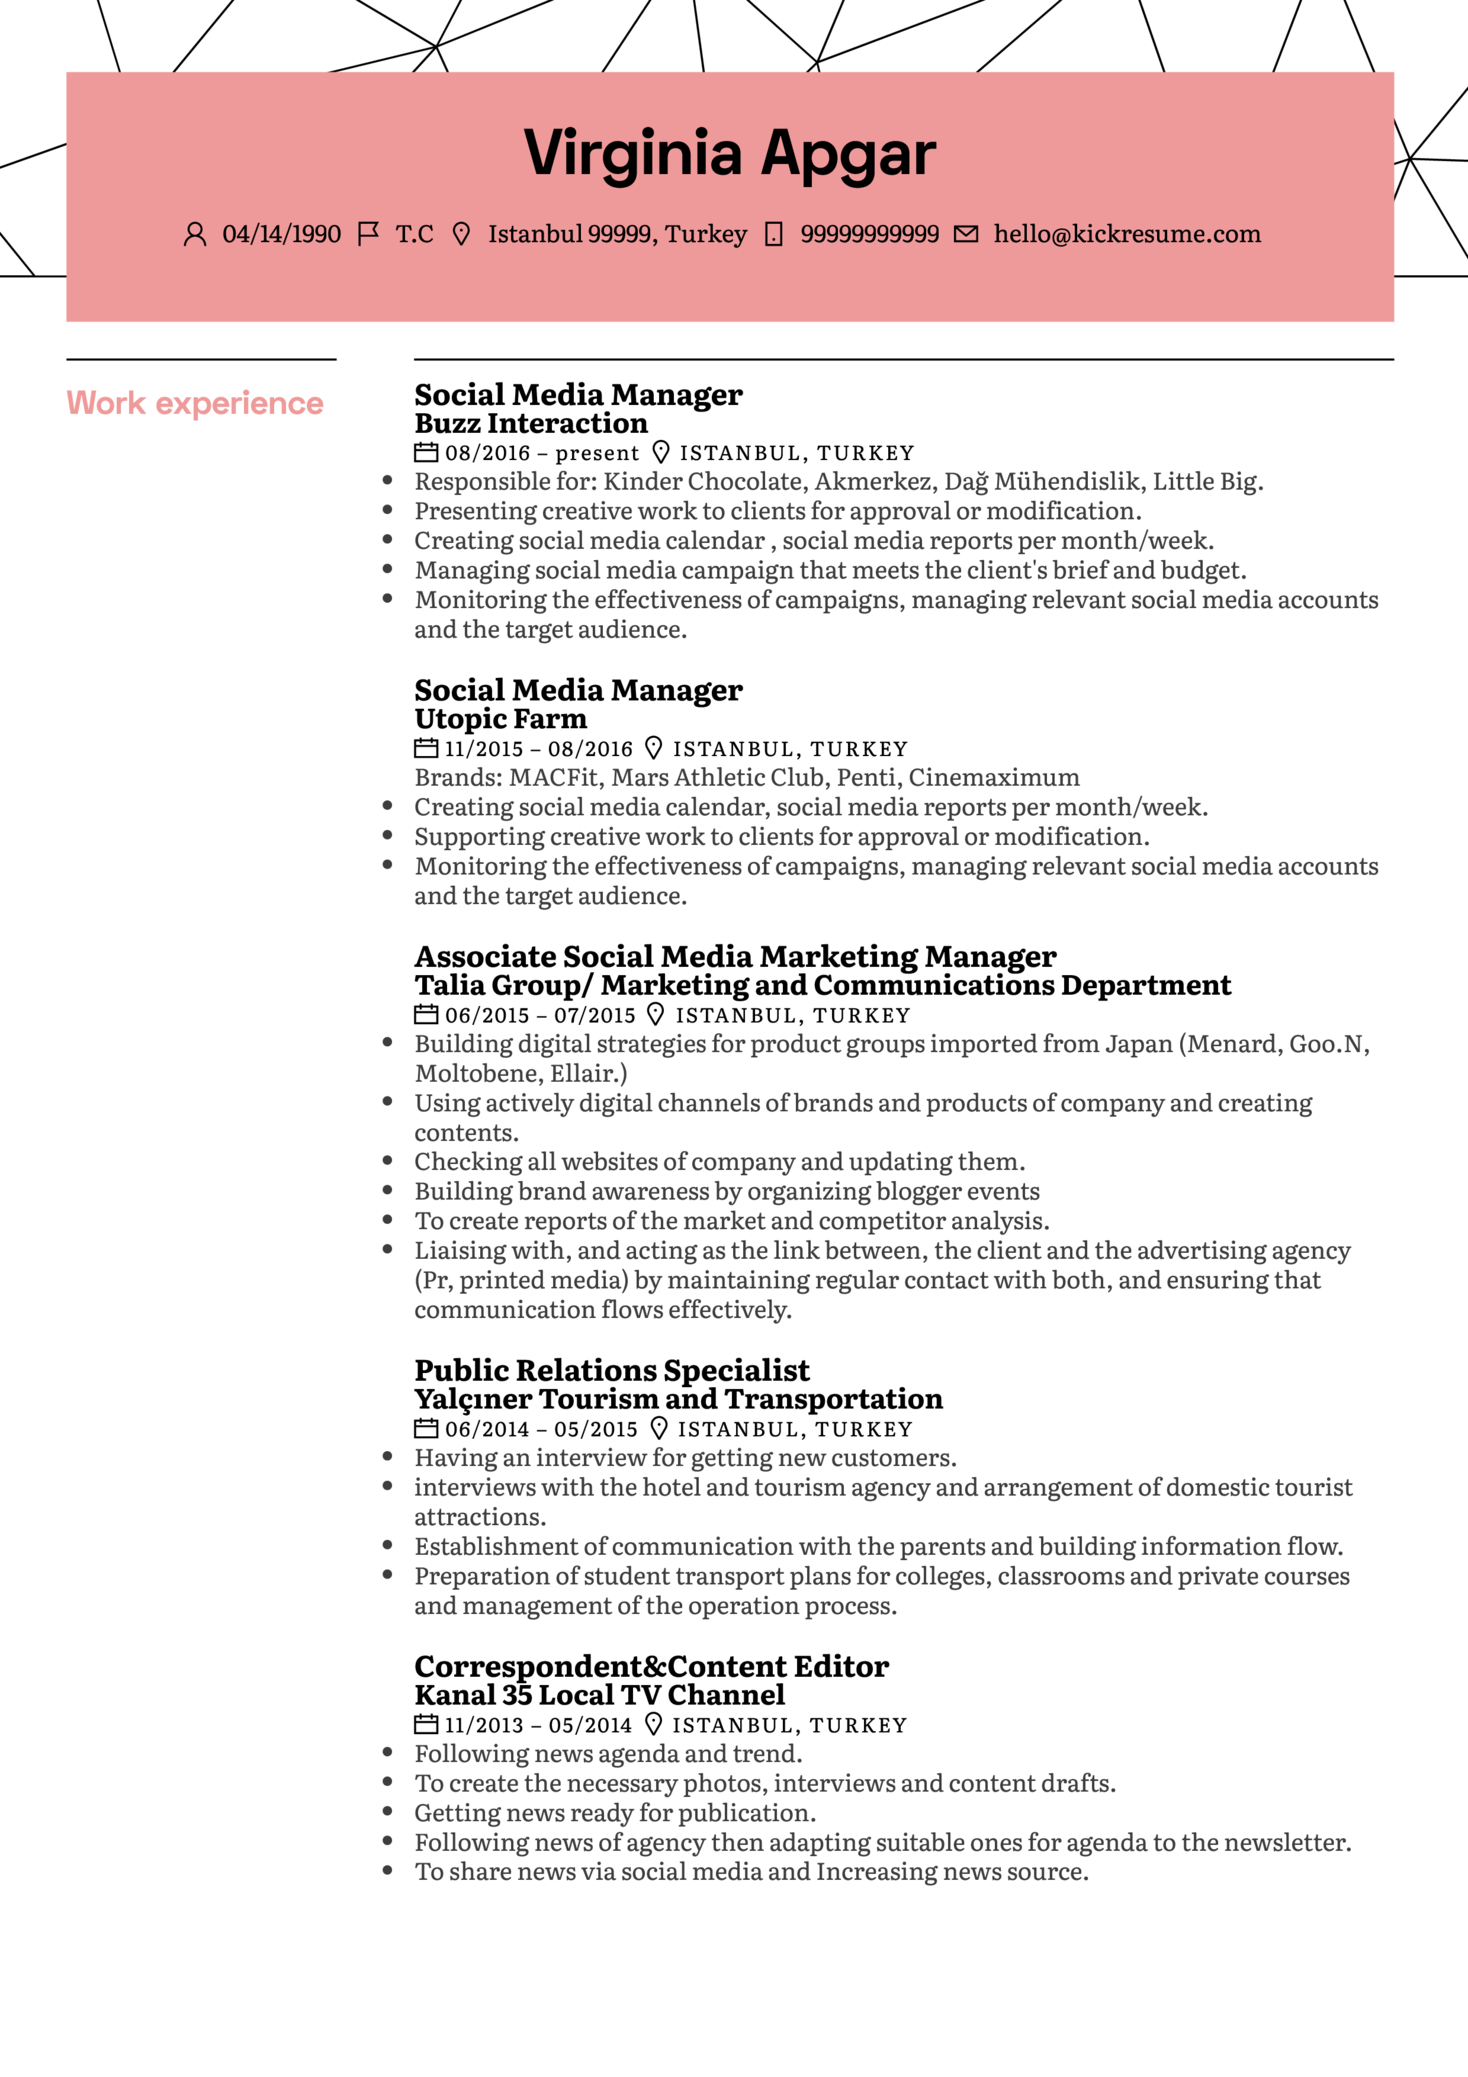 L'Oréal Social Media Manager Resume Sample (Part 1)